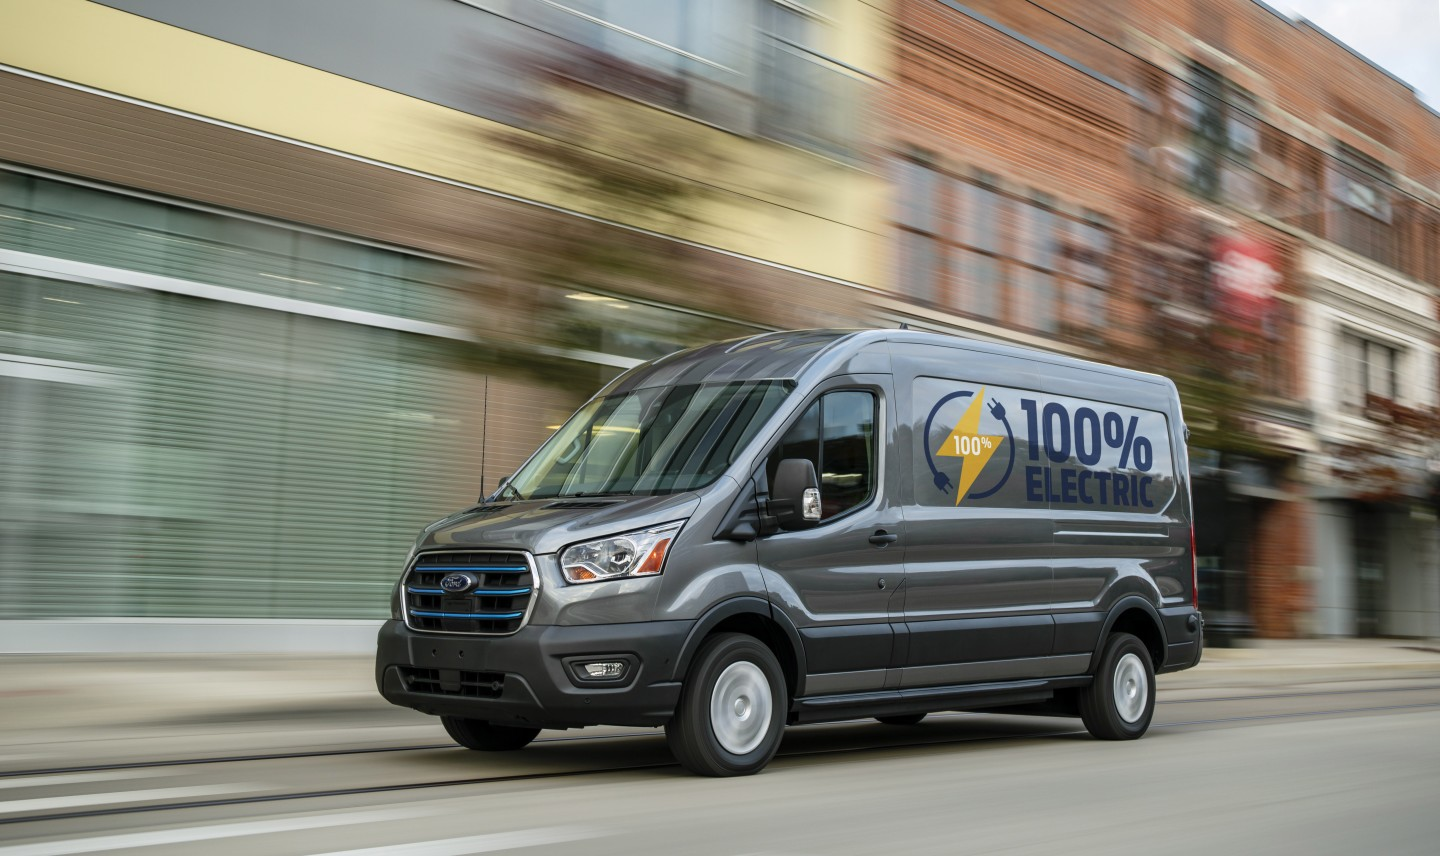 The Ford E-Transit will offer up to 126 miles of range, according to Ford's estimate